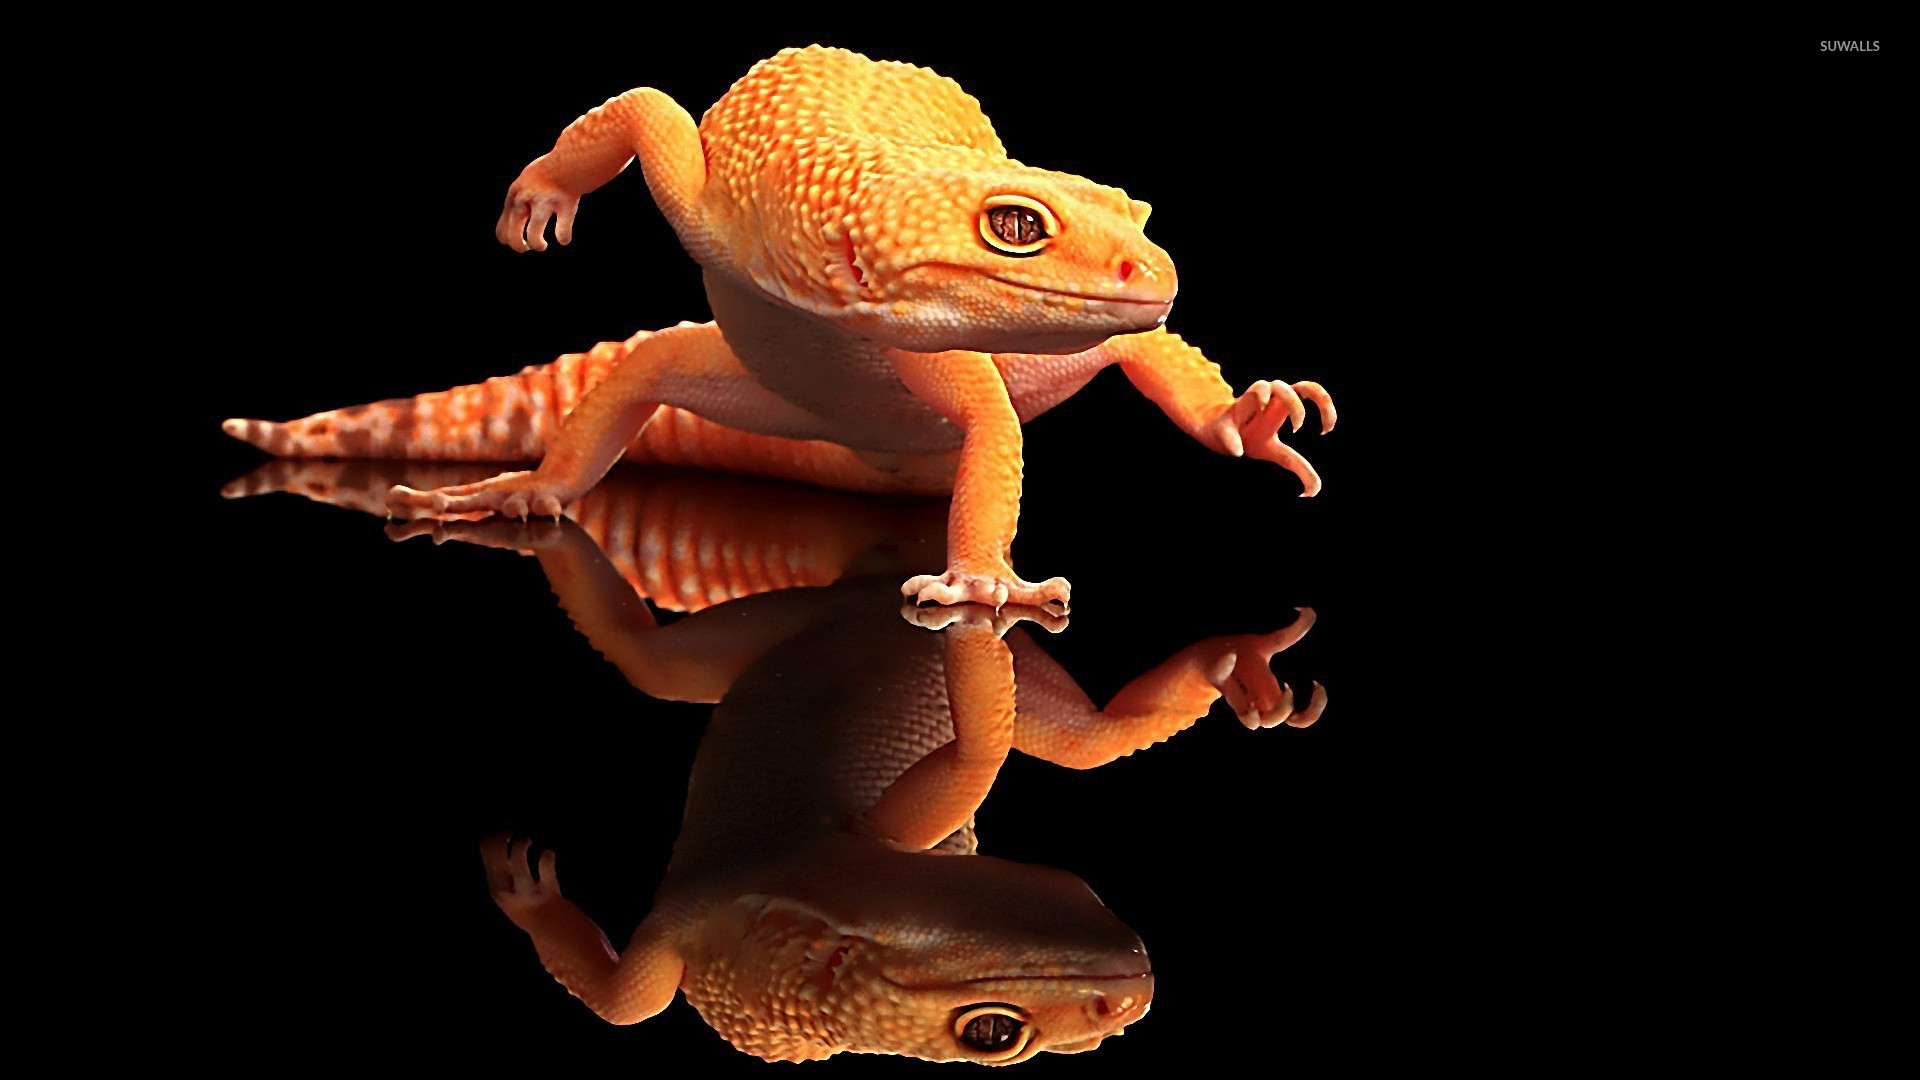 22 reptile hd wallpapers - photo #39